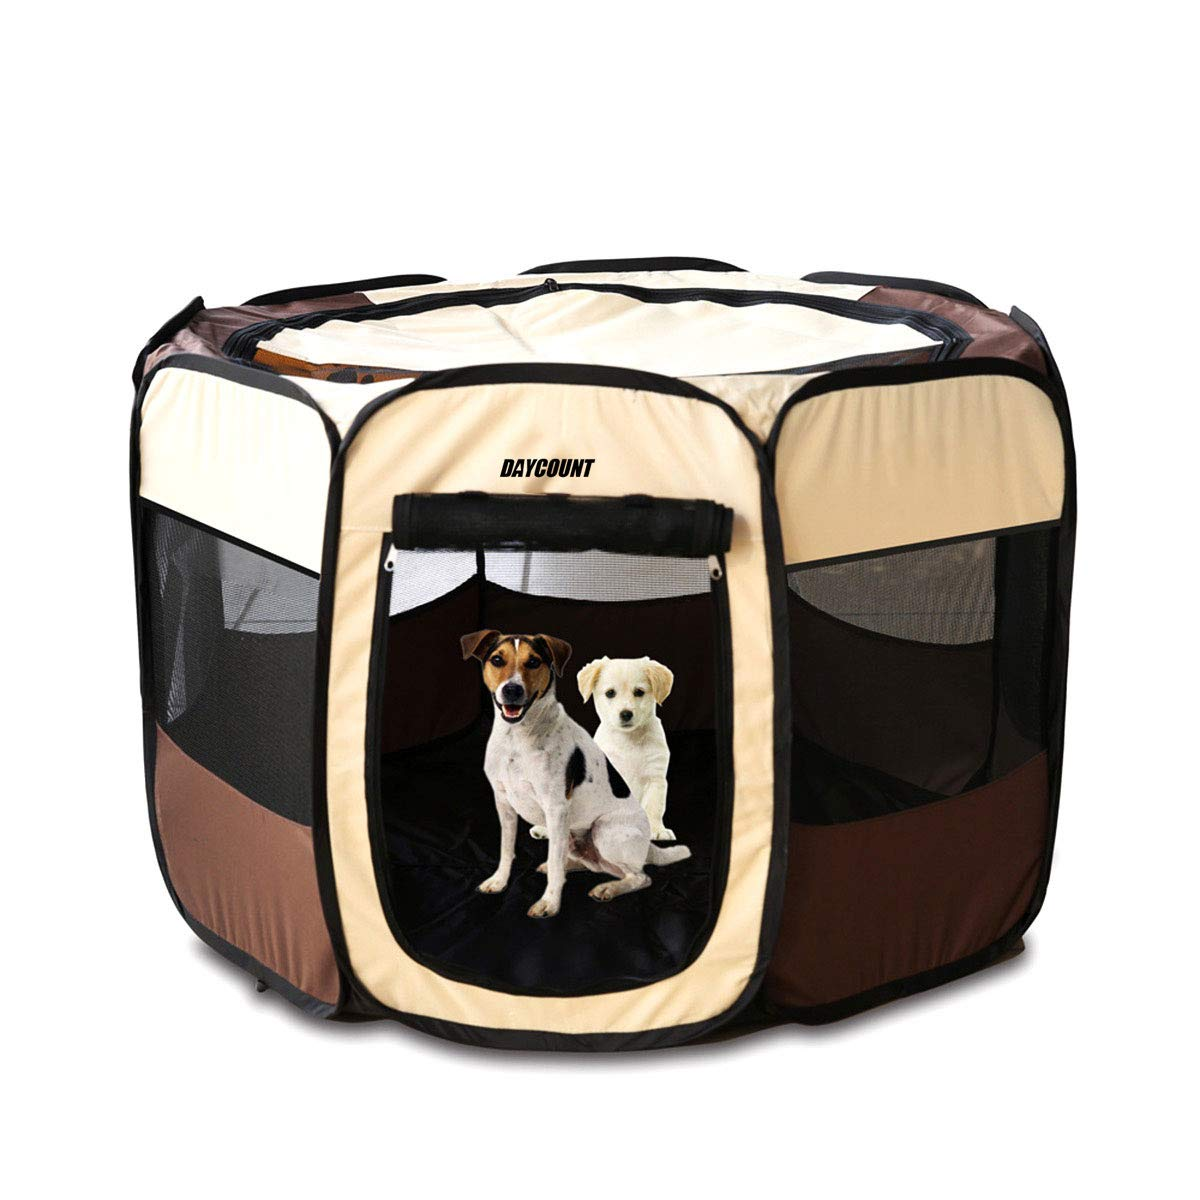 Beige & Brown S  28 x 28 x 18 inch Beige & Brown S  28 x 28 x 18 inch DayCount® 8 color Folding Pet Tent Cage Fence Playpen for Dogs Home Puppy Fence Kennel Kitten House Cage Dog House Pet Exercise Play Cage (S  28 x 28 x 18 inch, Beige & Brown)